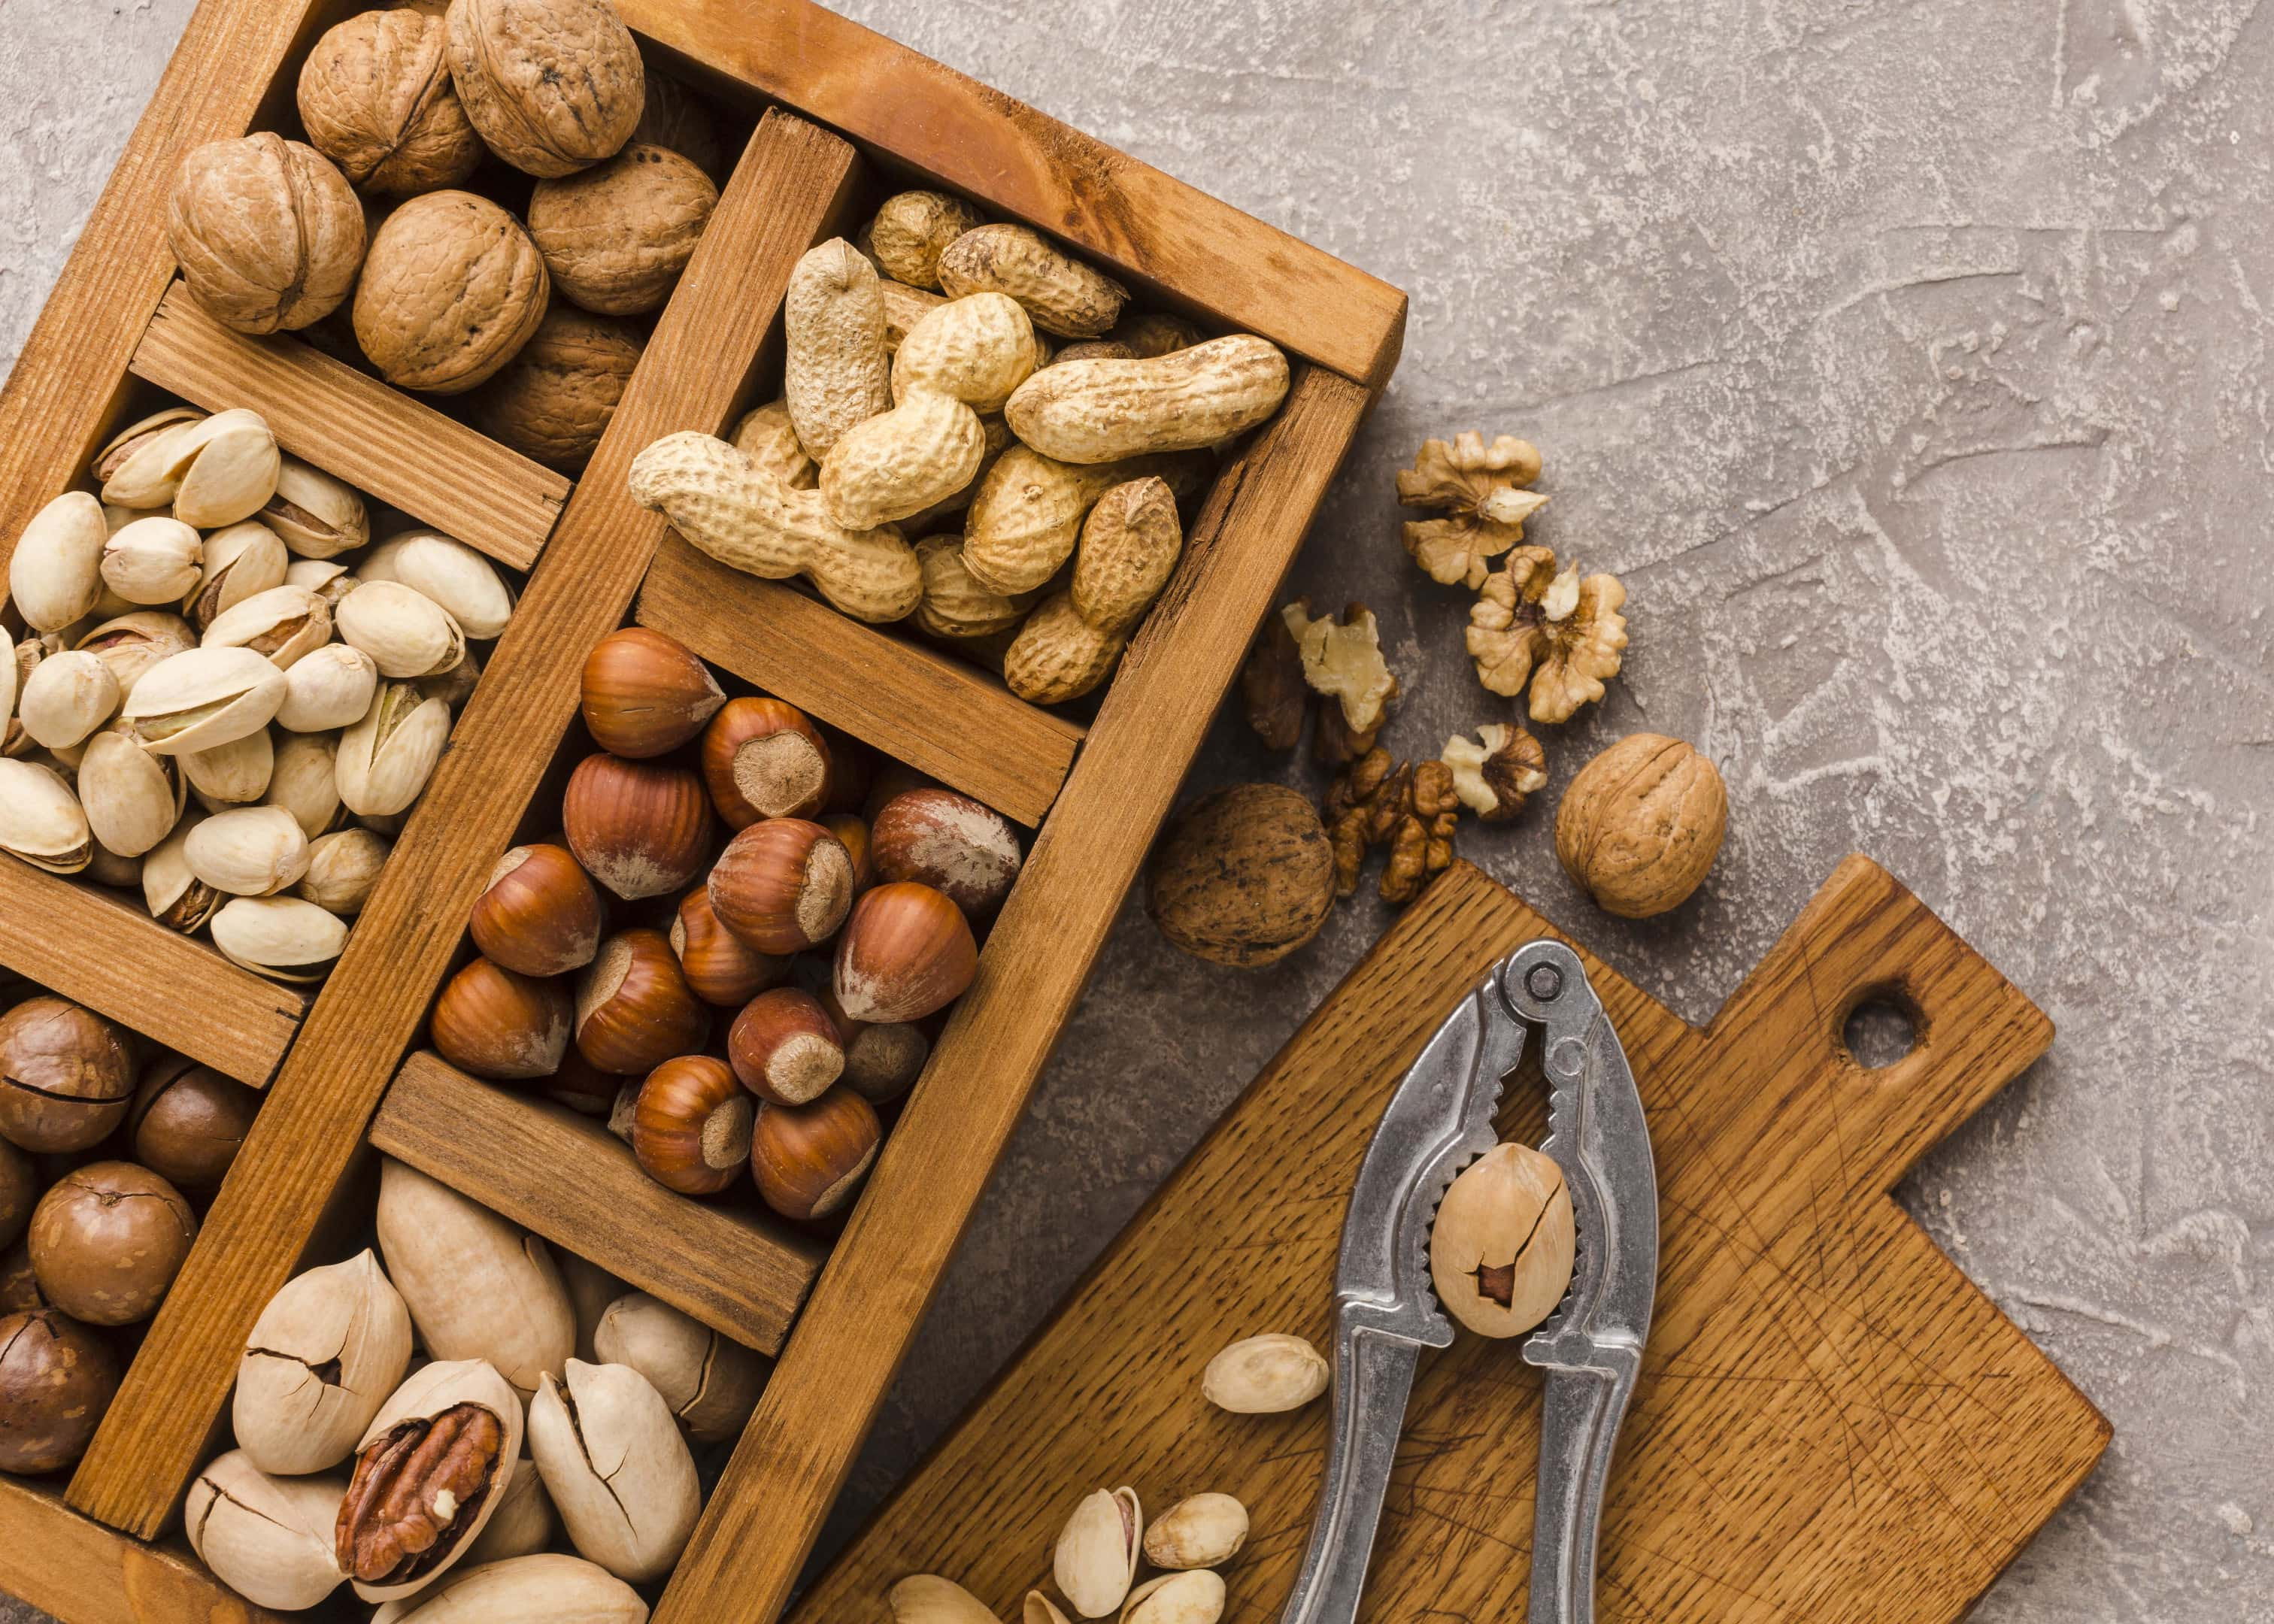 Different types nuts in wooden box